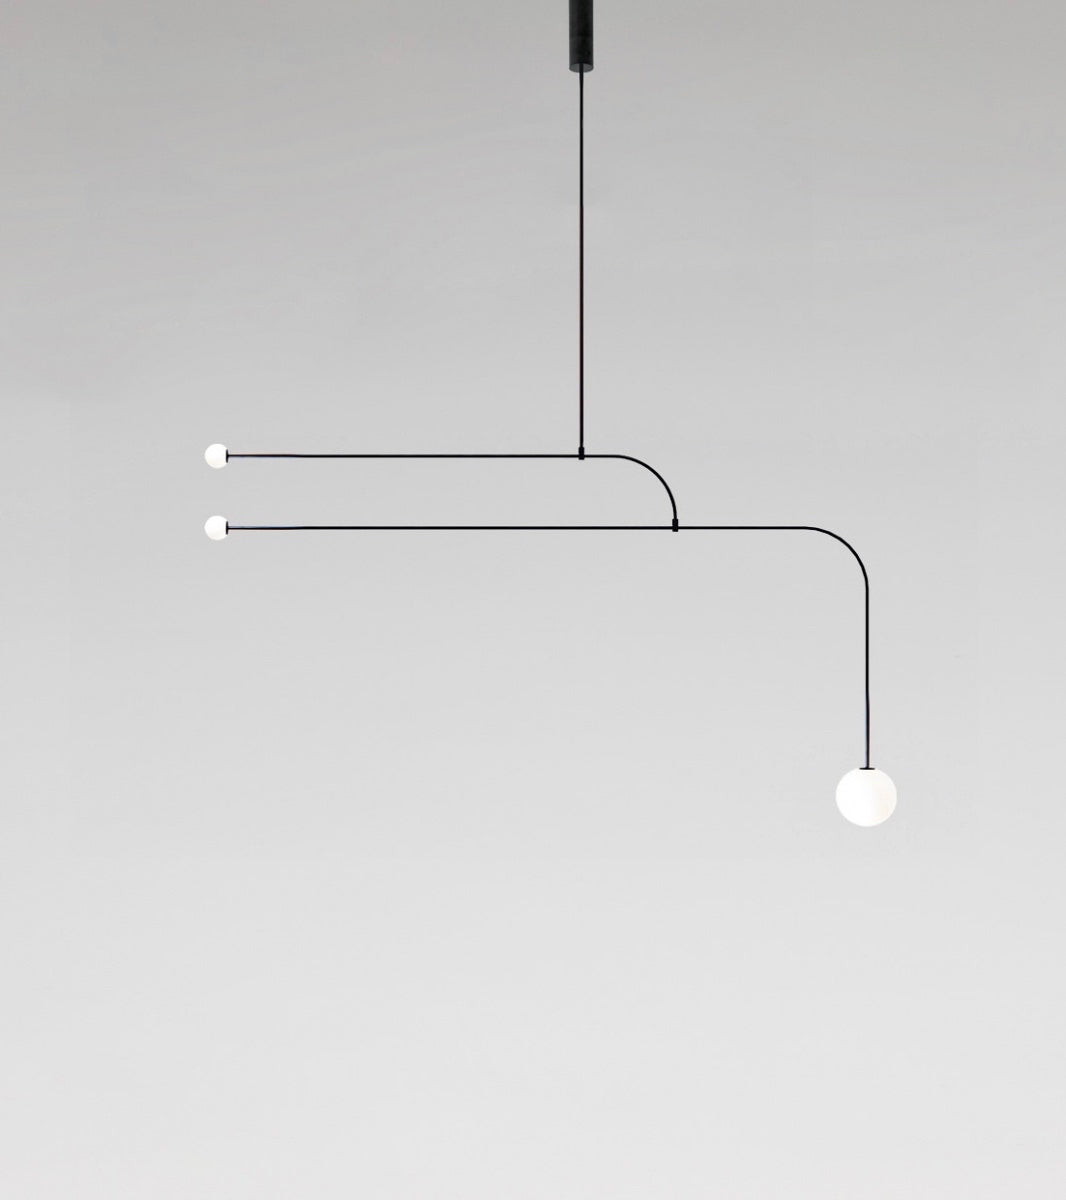 Mobile Chandelier 12 <br> by Michael Anastassiades